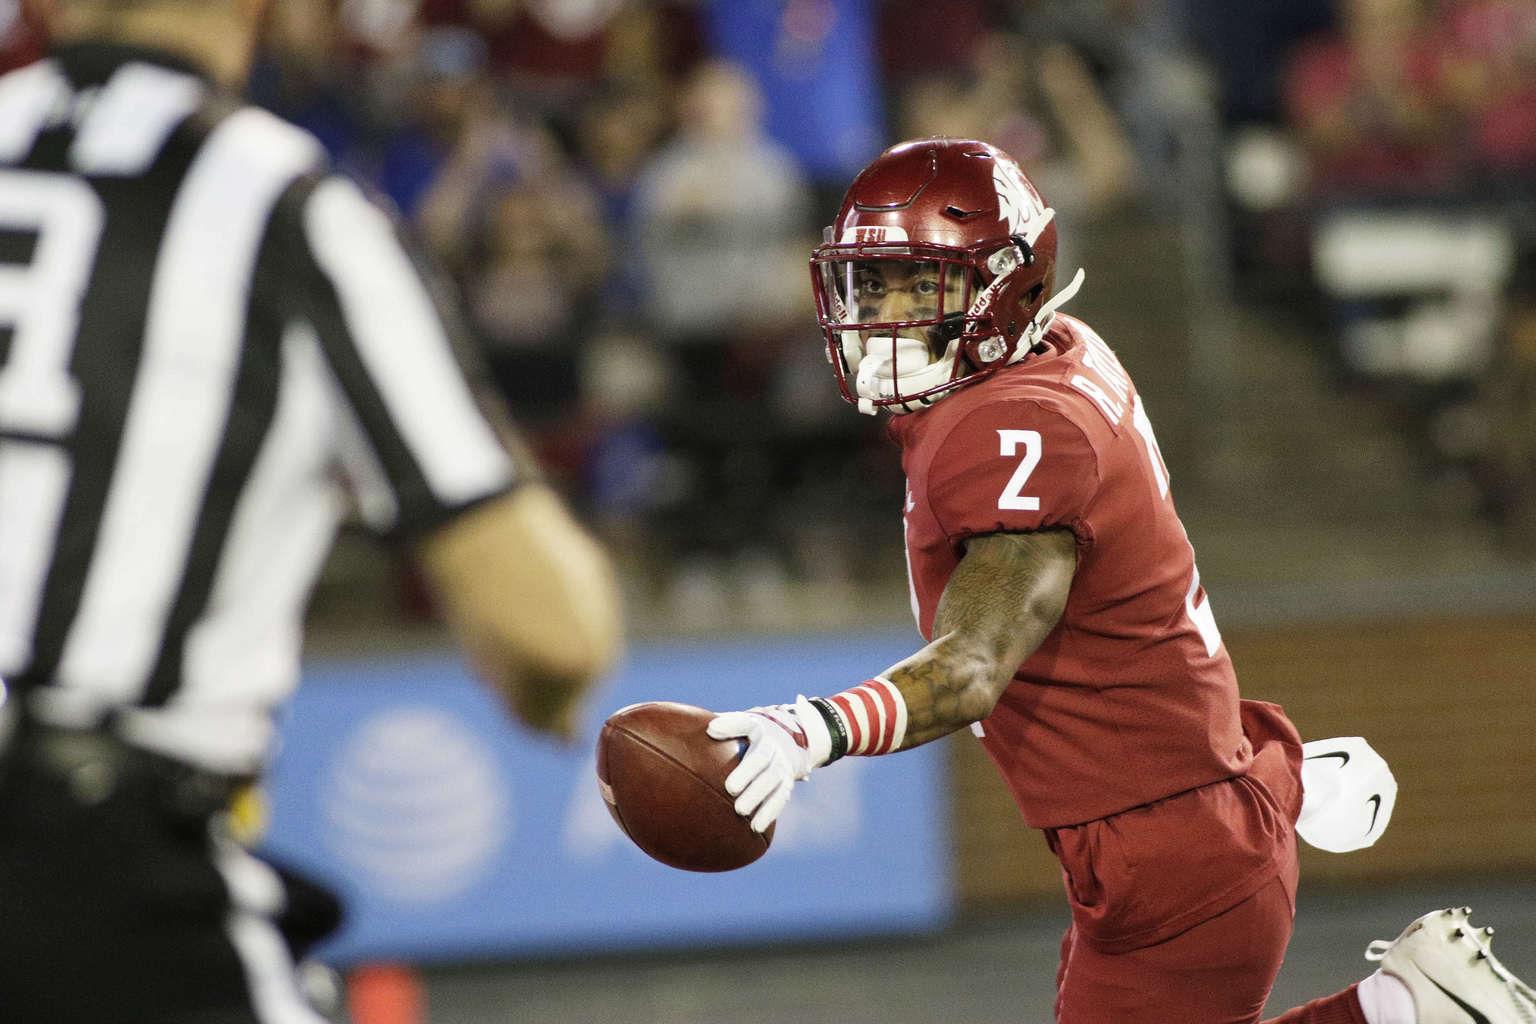 Cougs complete comeback shocking Boise State in 3OT thriller